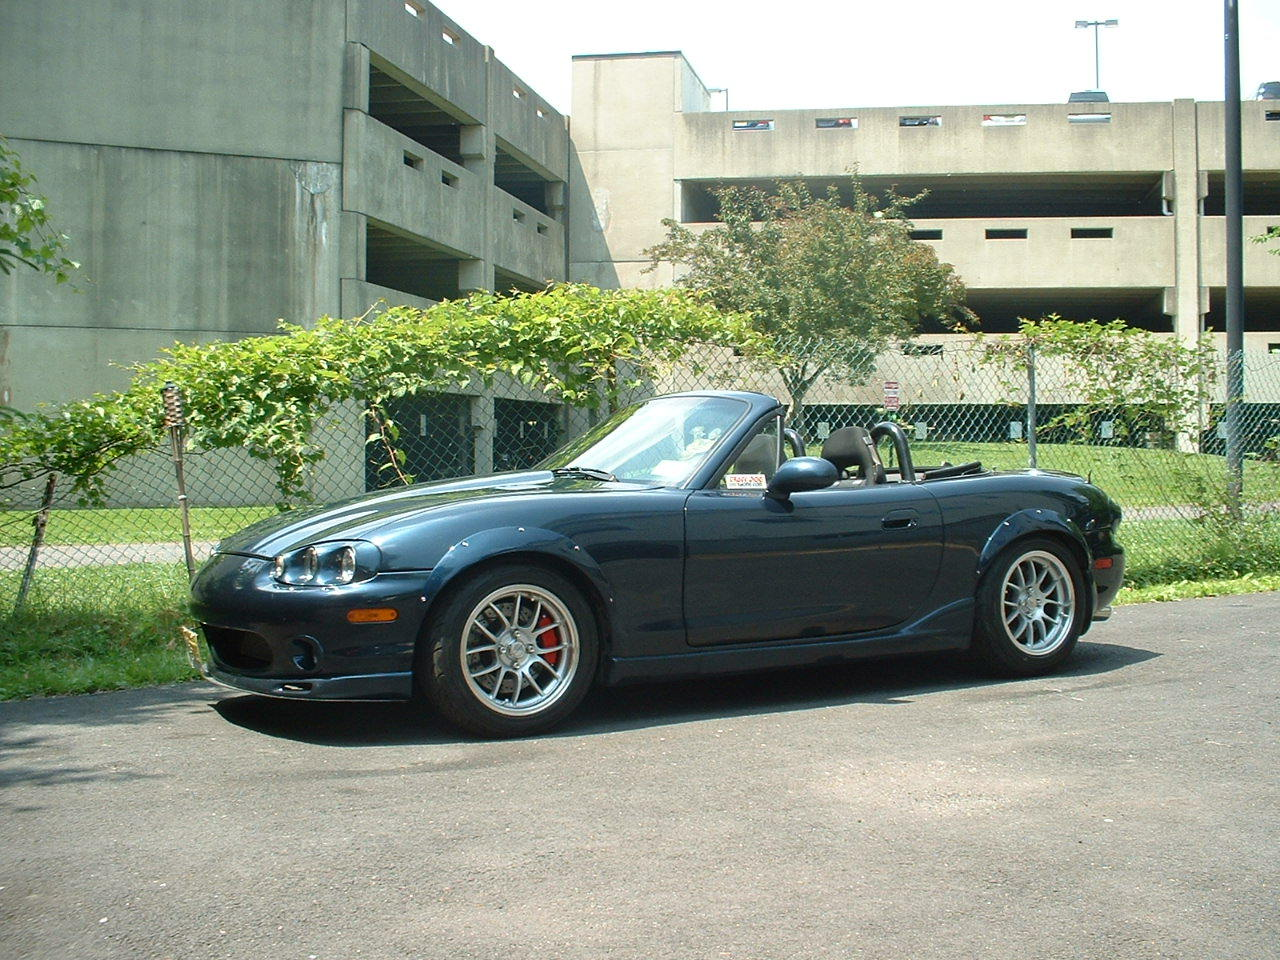 crazym2 39 s 1999 mazda miata mx 5 in bergen county nj. Black Bedroom Furniture Sets. Home Design Ideas